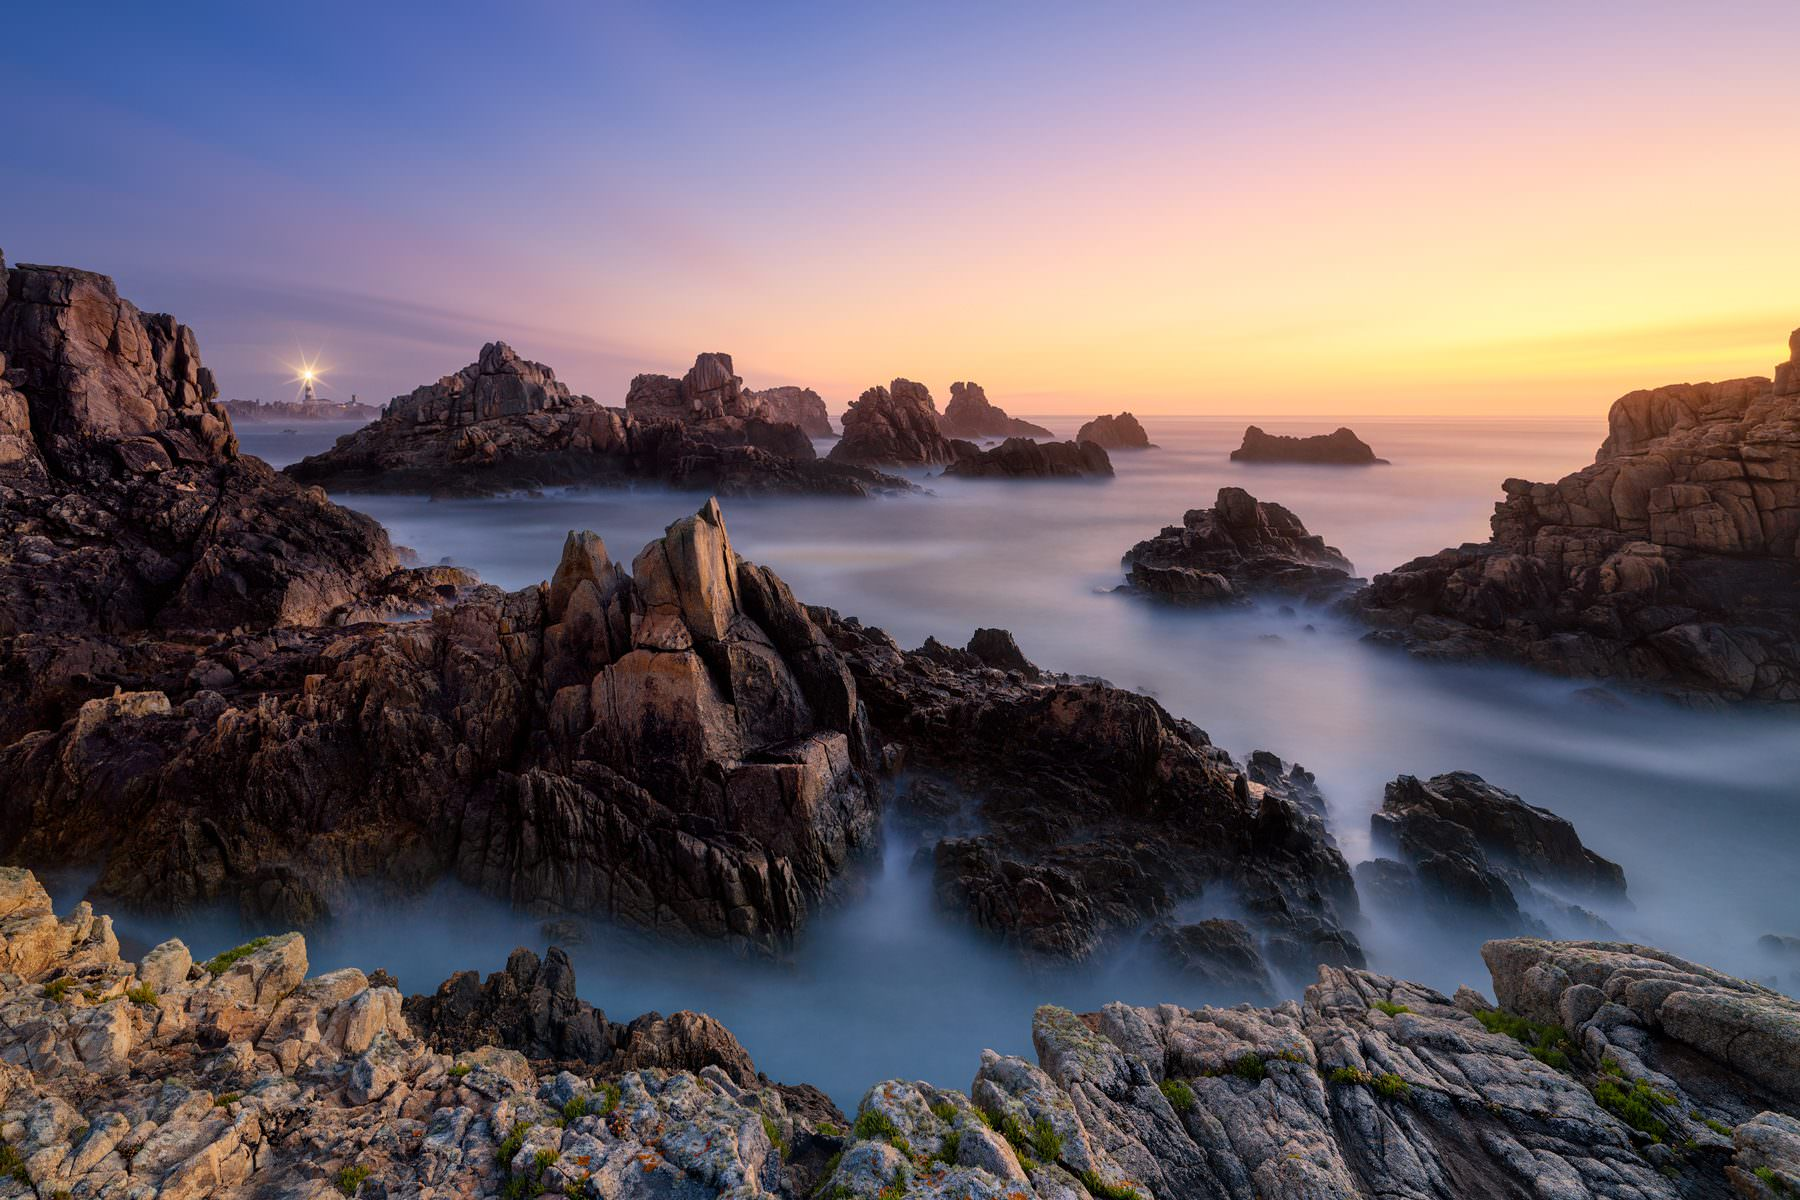 France - Bretagne - Ile d'Ouessant - Sunset mood at Phare du Creac'h © by Gerry Pacher